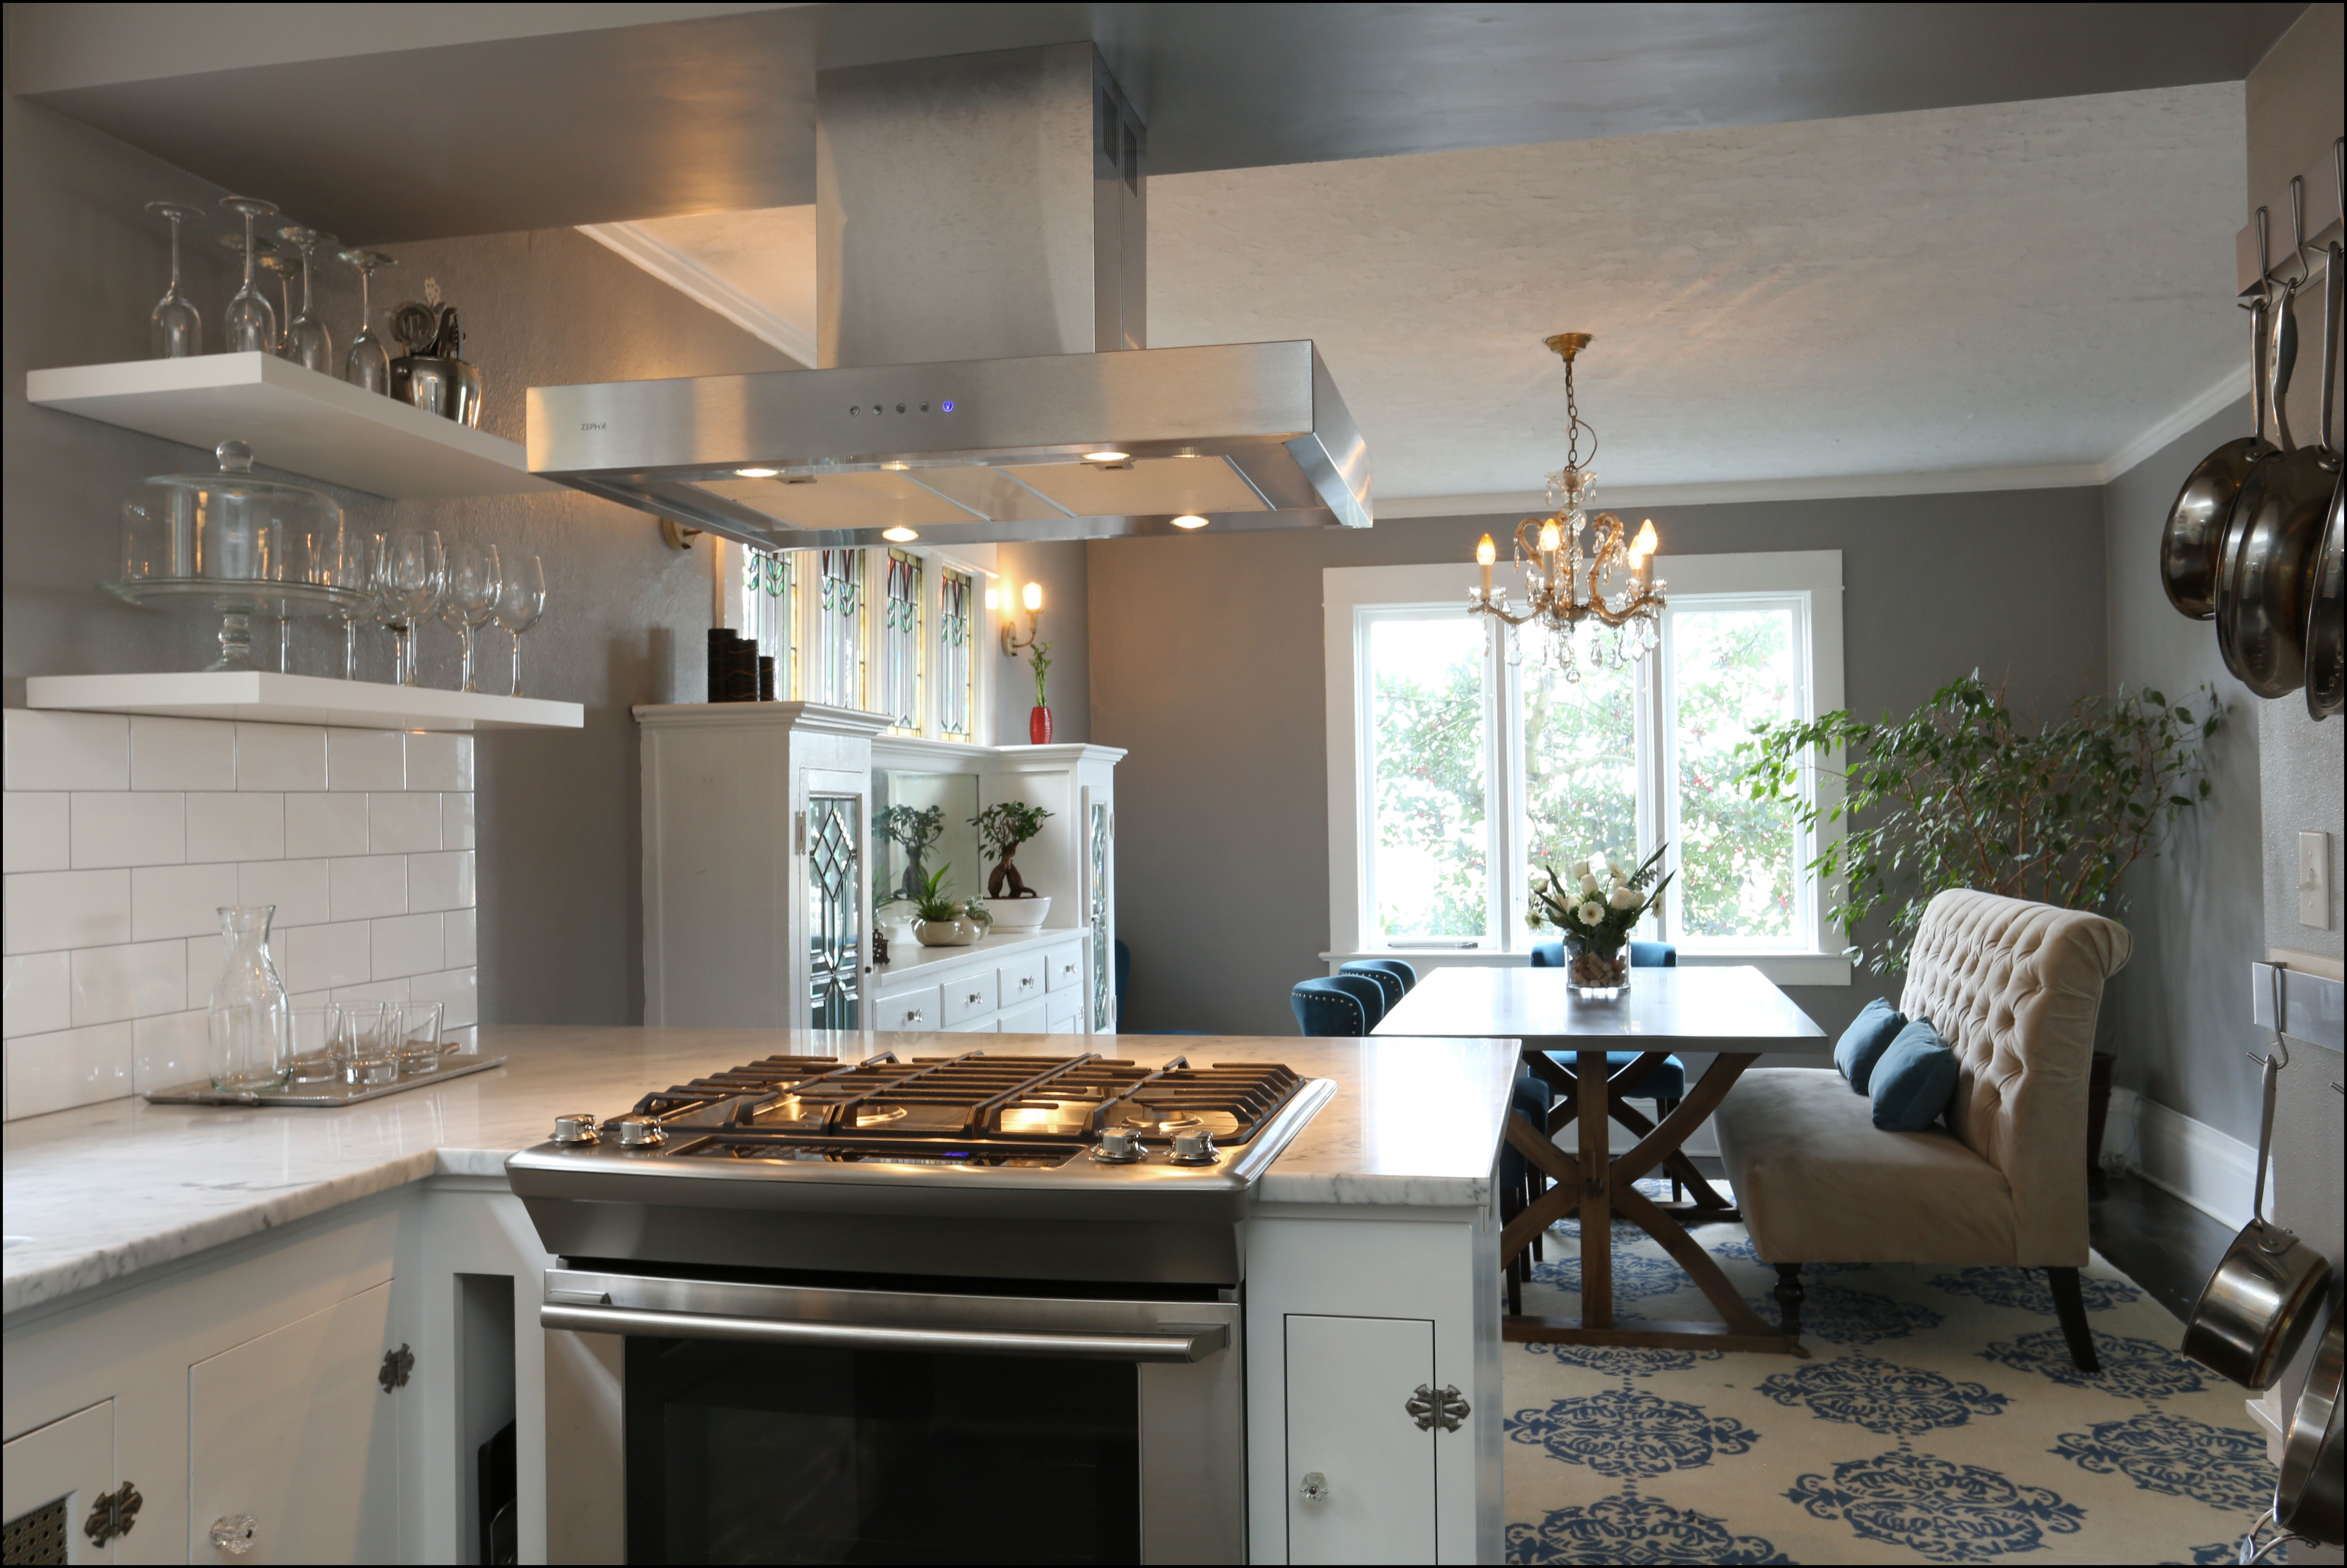 Small Kitchen With Peninsula 2a2b2136 Project Pinterest Dining Rooms Kitchen Peninsula